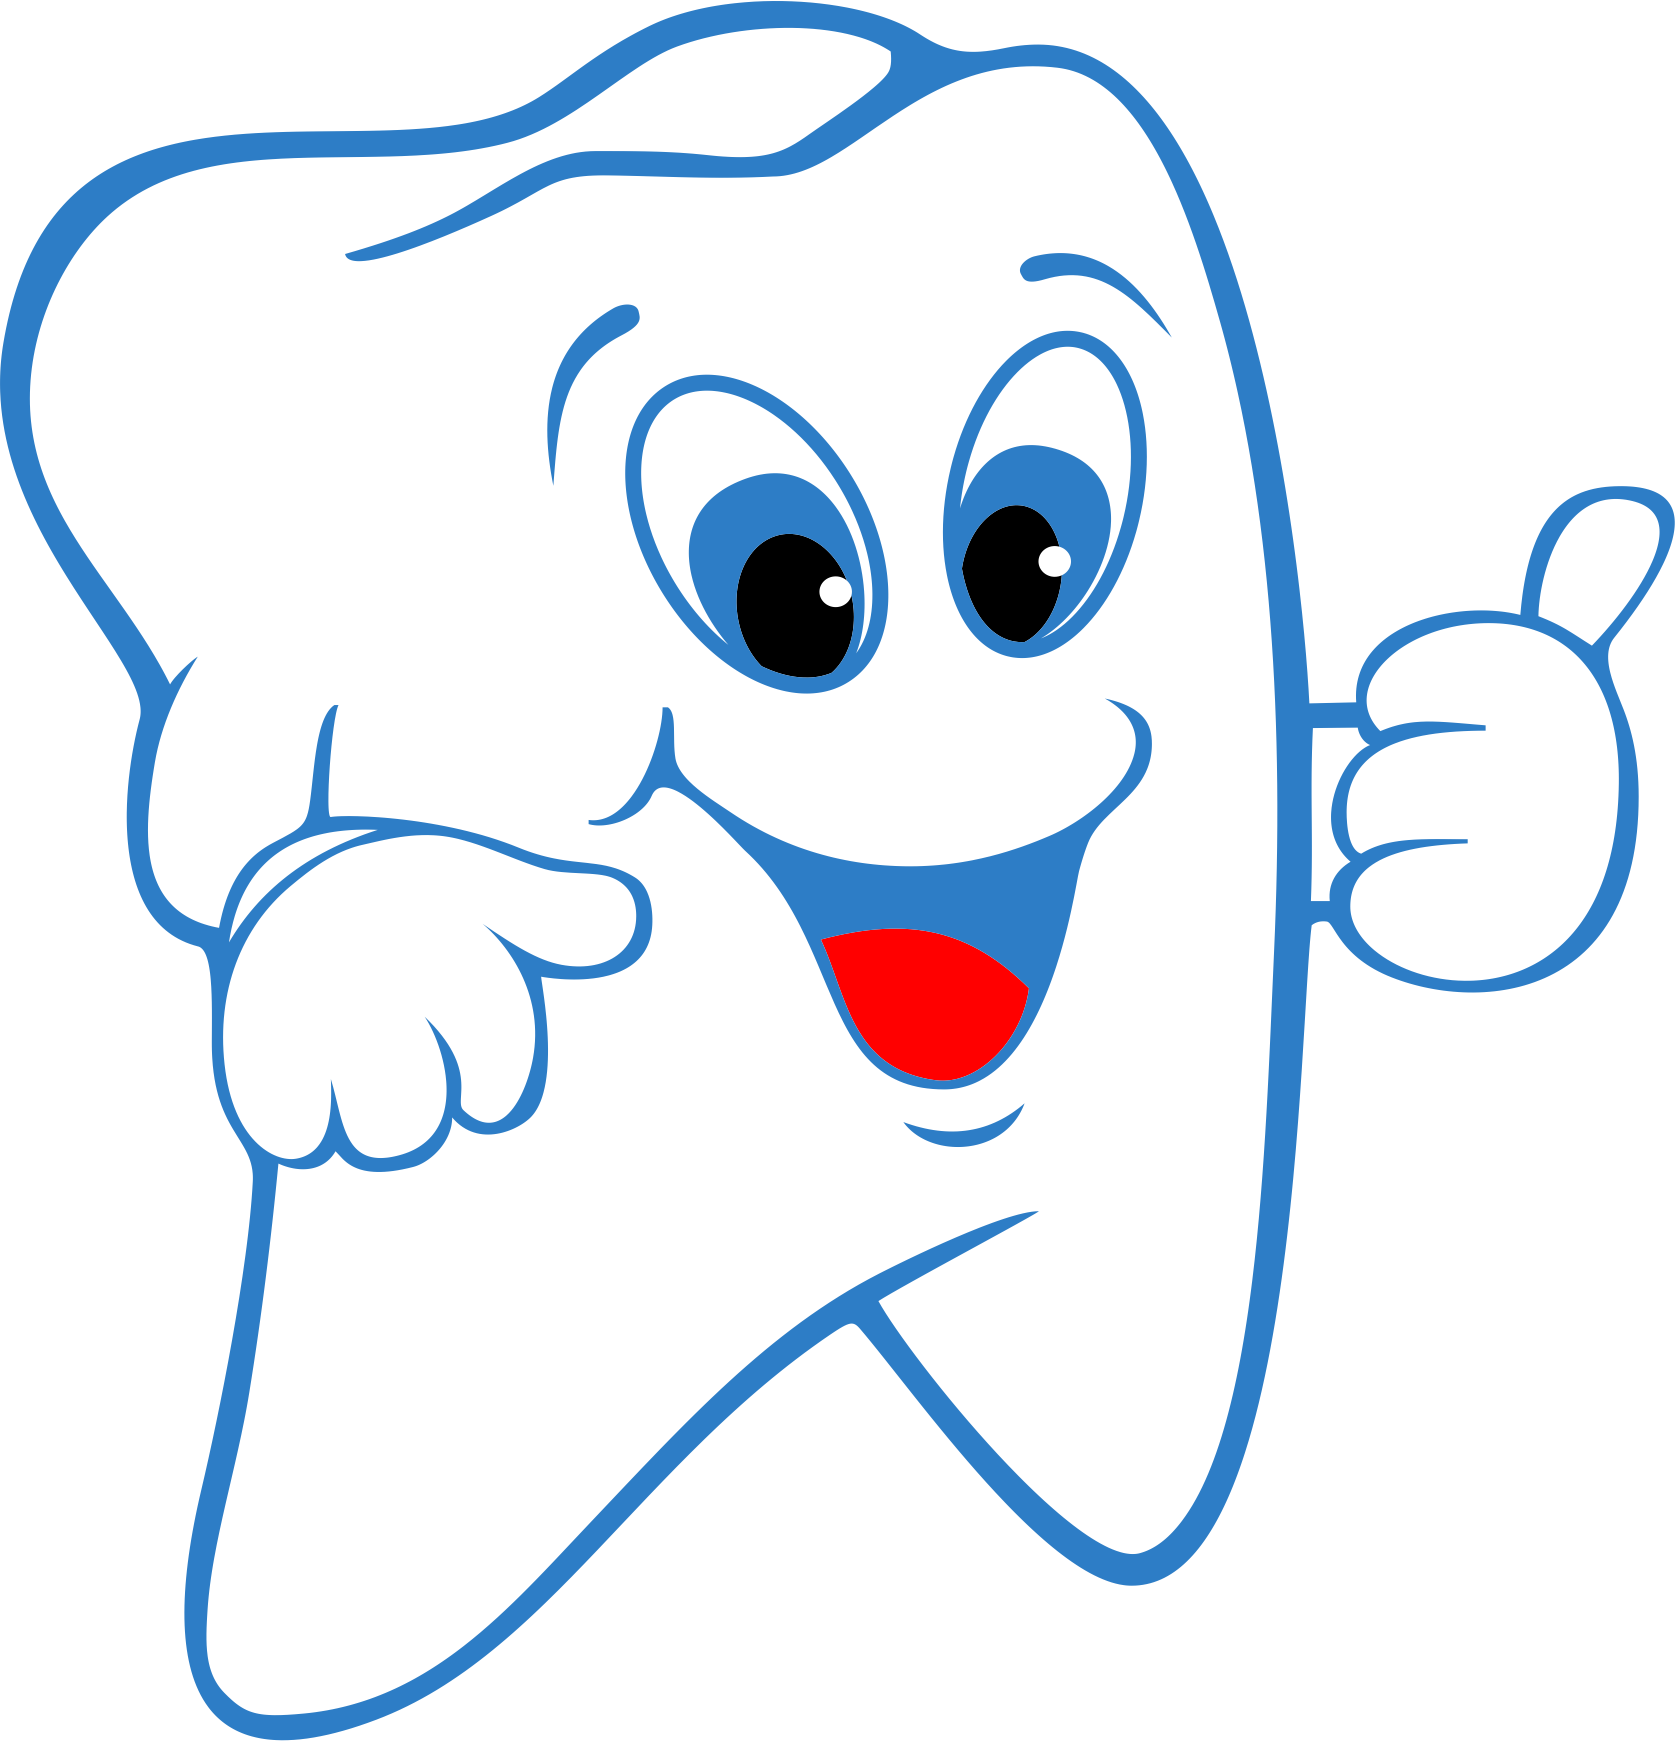 Free PNG Teeth Transparent Teeth.PNG Images..